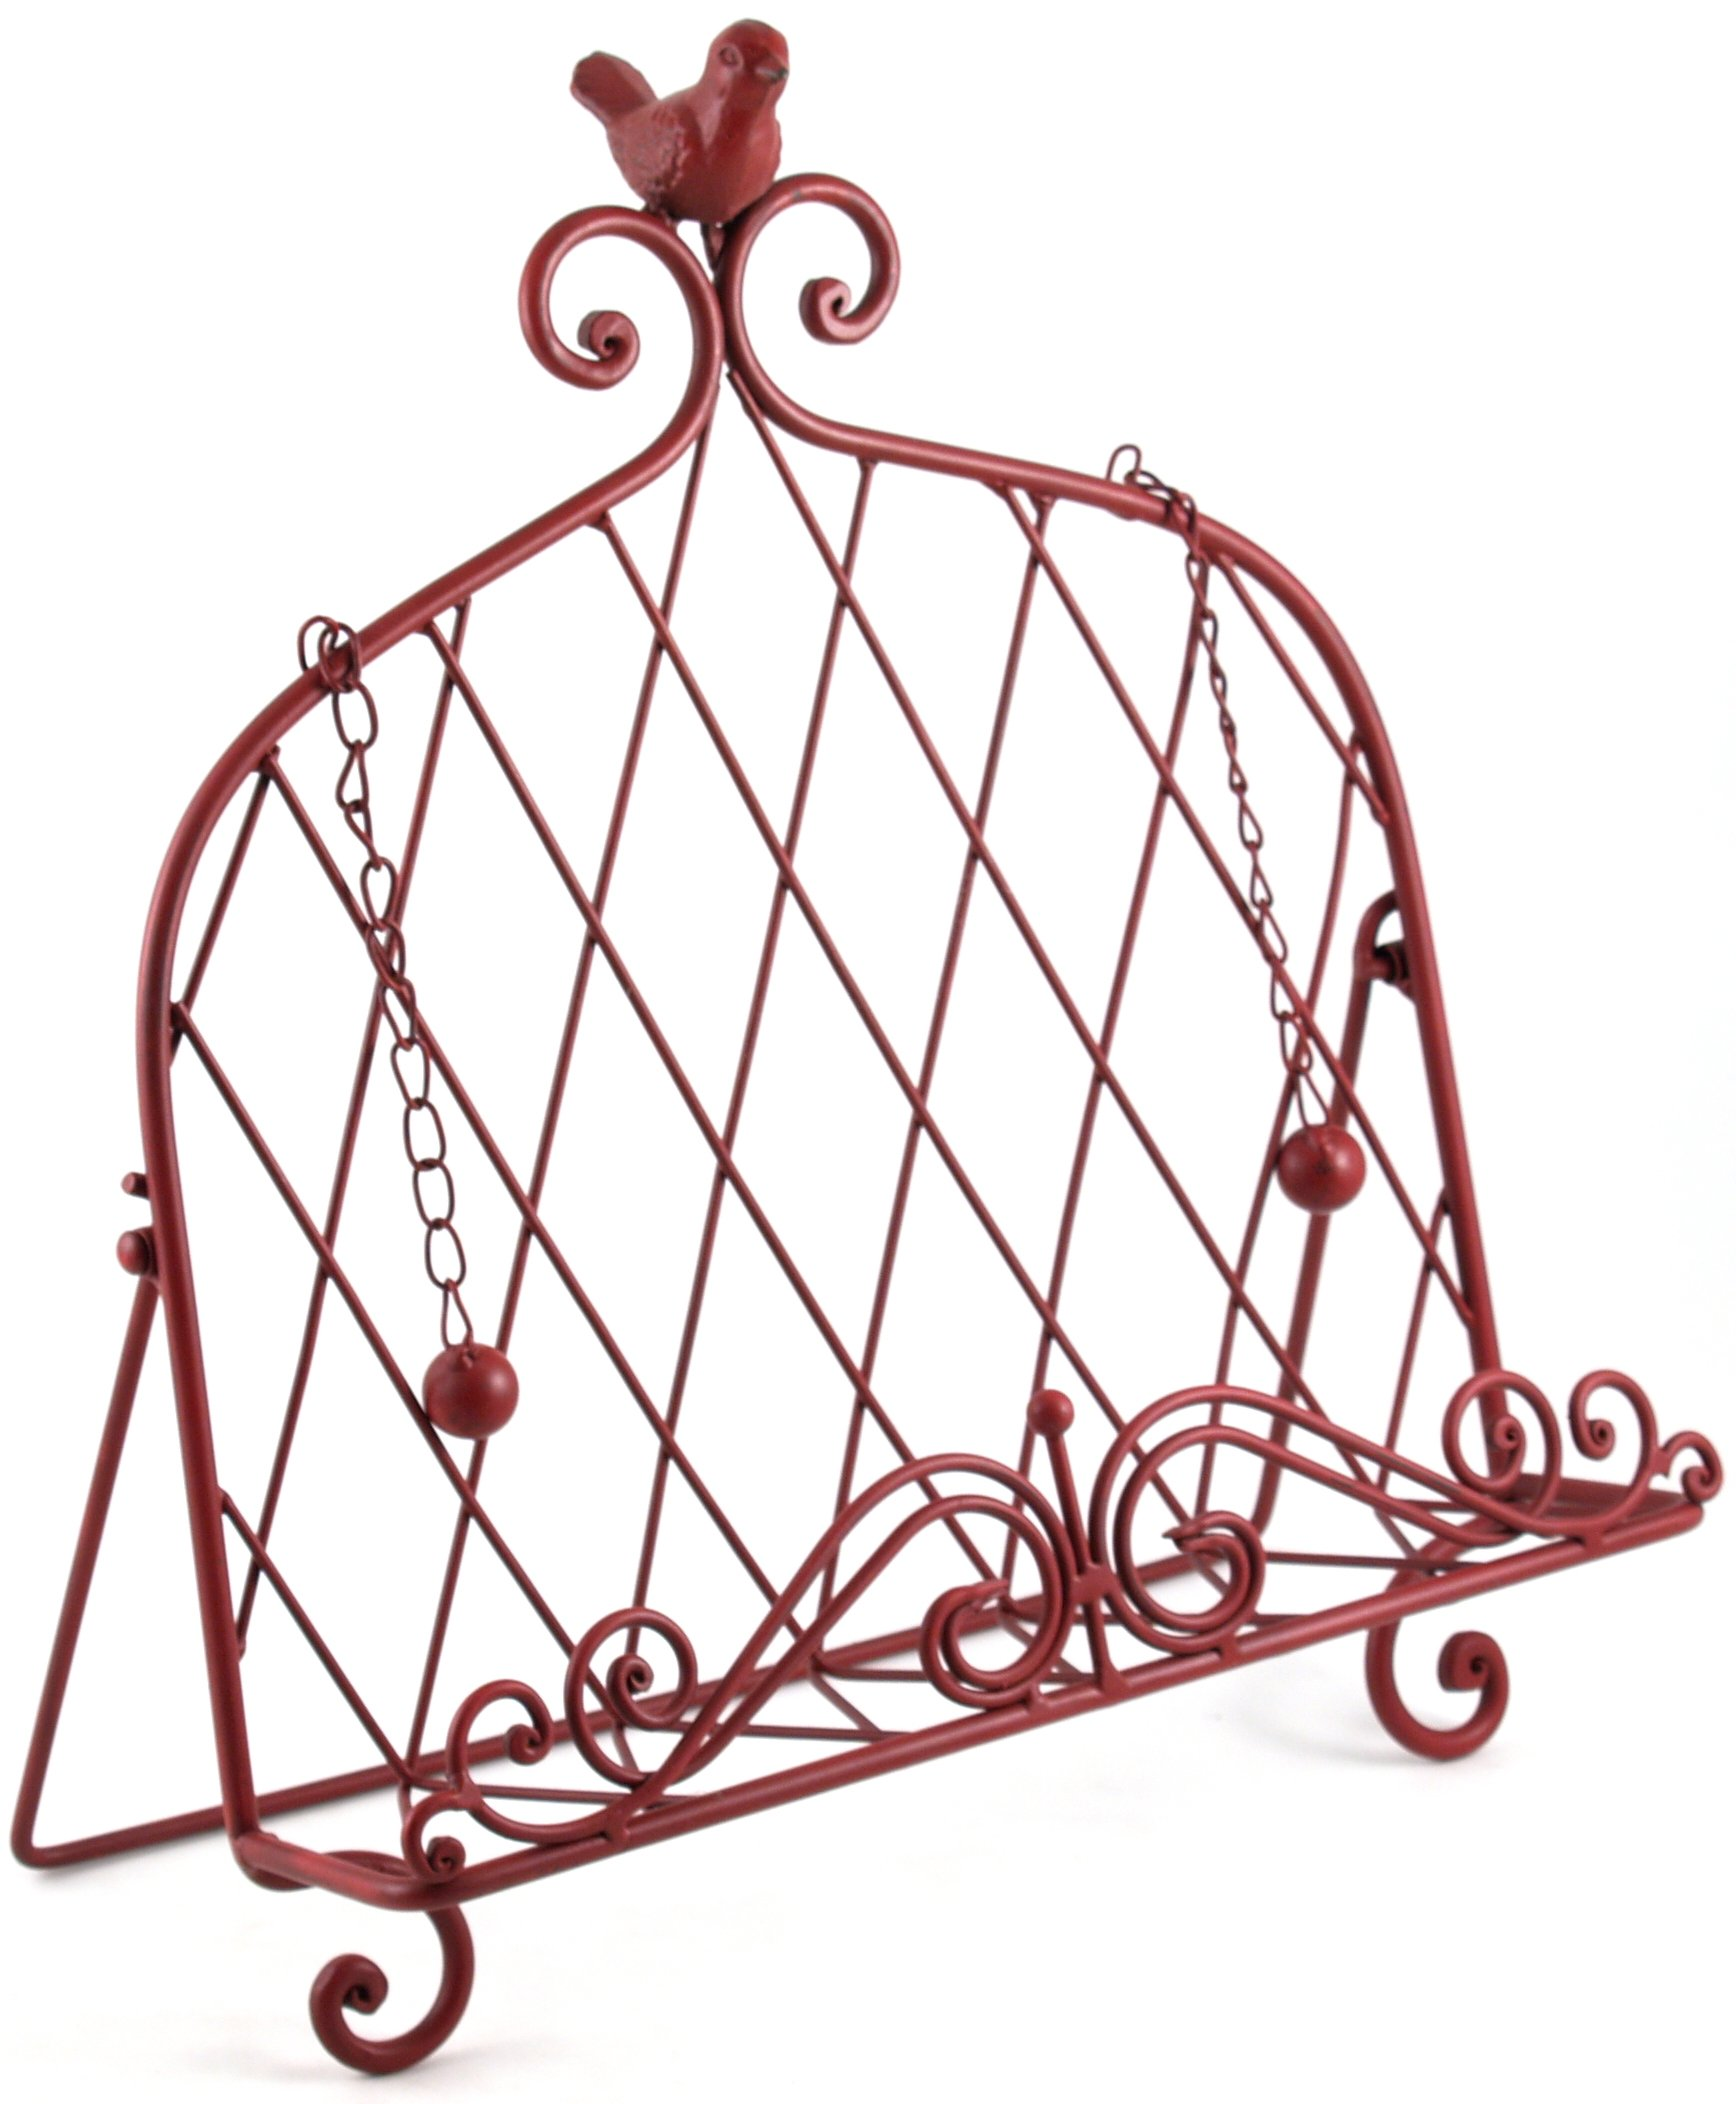 Iron Cookbook Stand ~ Book Holder Adorned with Bird ~ Worn Red Color by Upper Deck, LTD